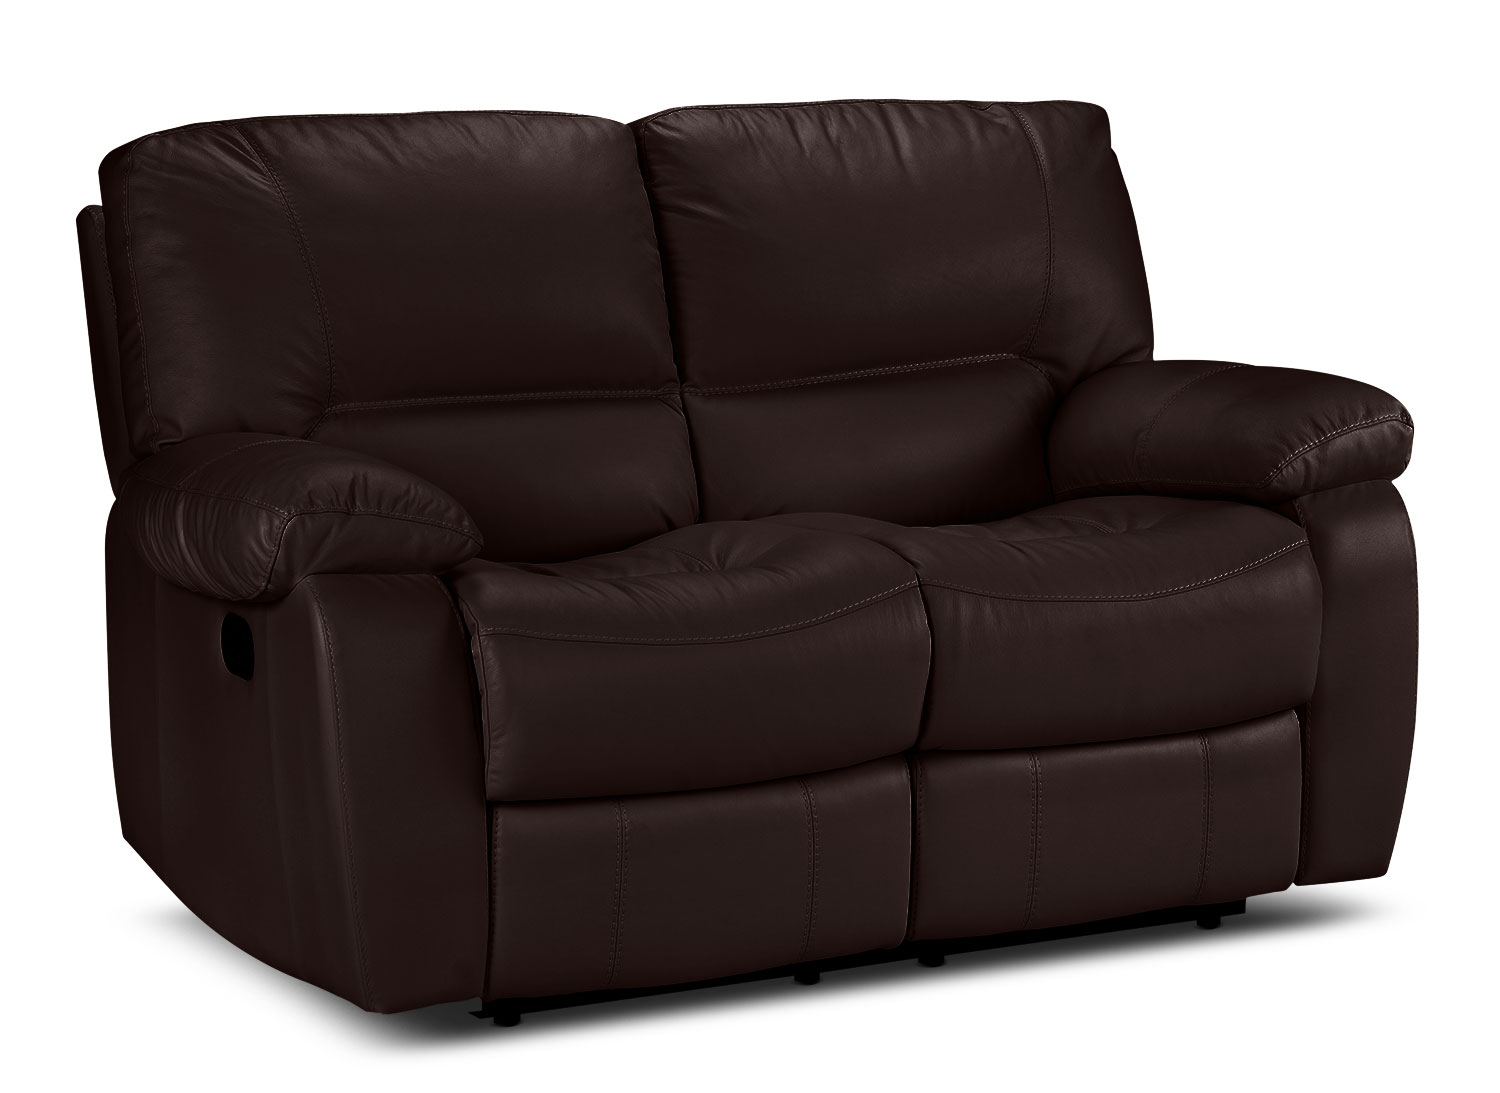 Living Room Furniture - Piermont Reclining Loveseat - Chocolate